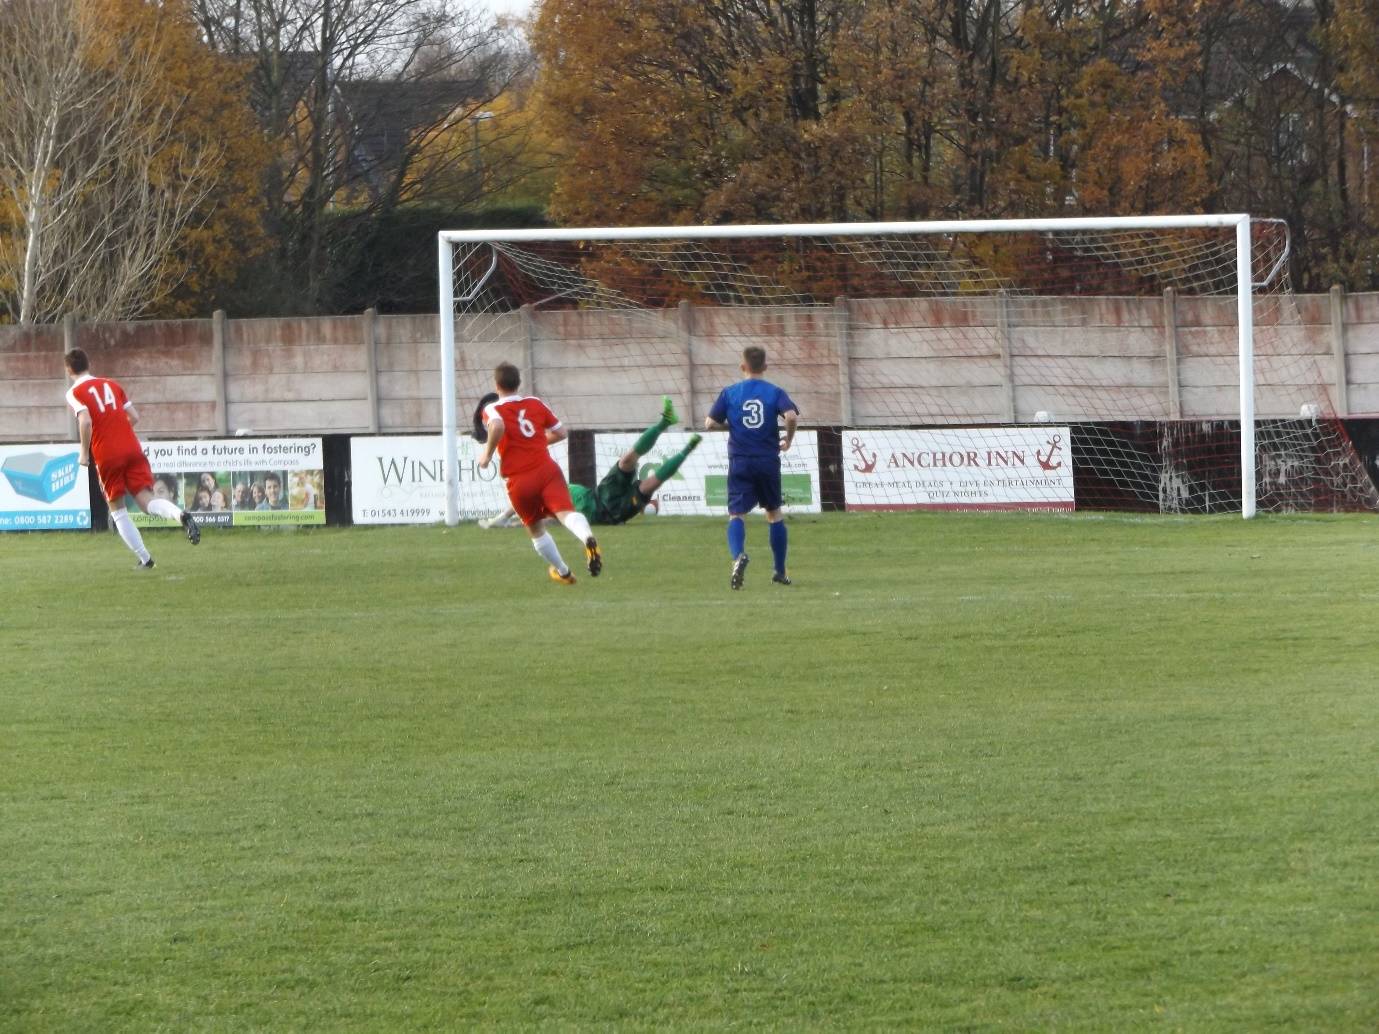 Drew fires from the penalty spot and it's a goal to the Wood and the home spectators are mightily chuffed